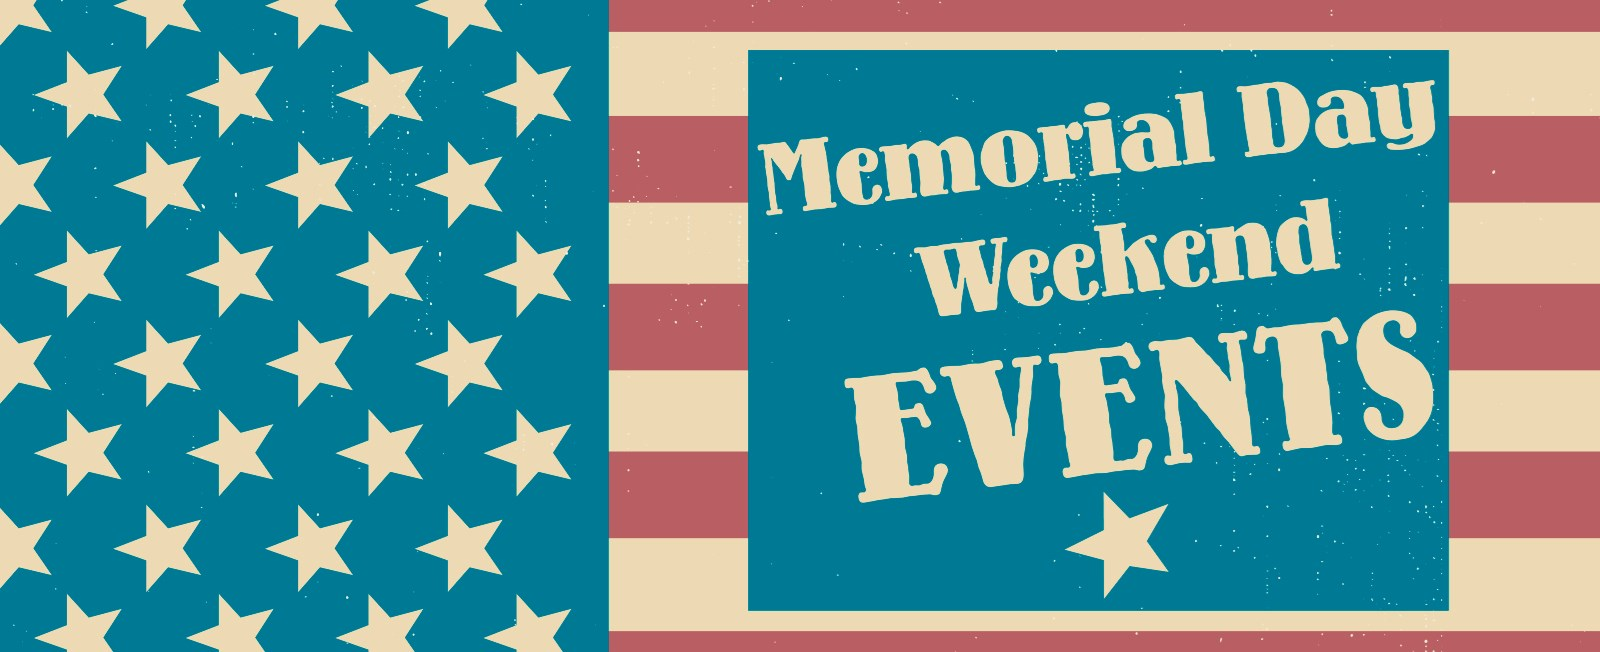 Spend the three day weekend on the Cape! There are many events happening, and the beaches are ready. We have also provided a few vacation rental homes with Memorial Day weekend availability.